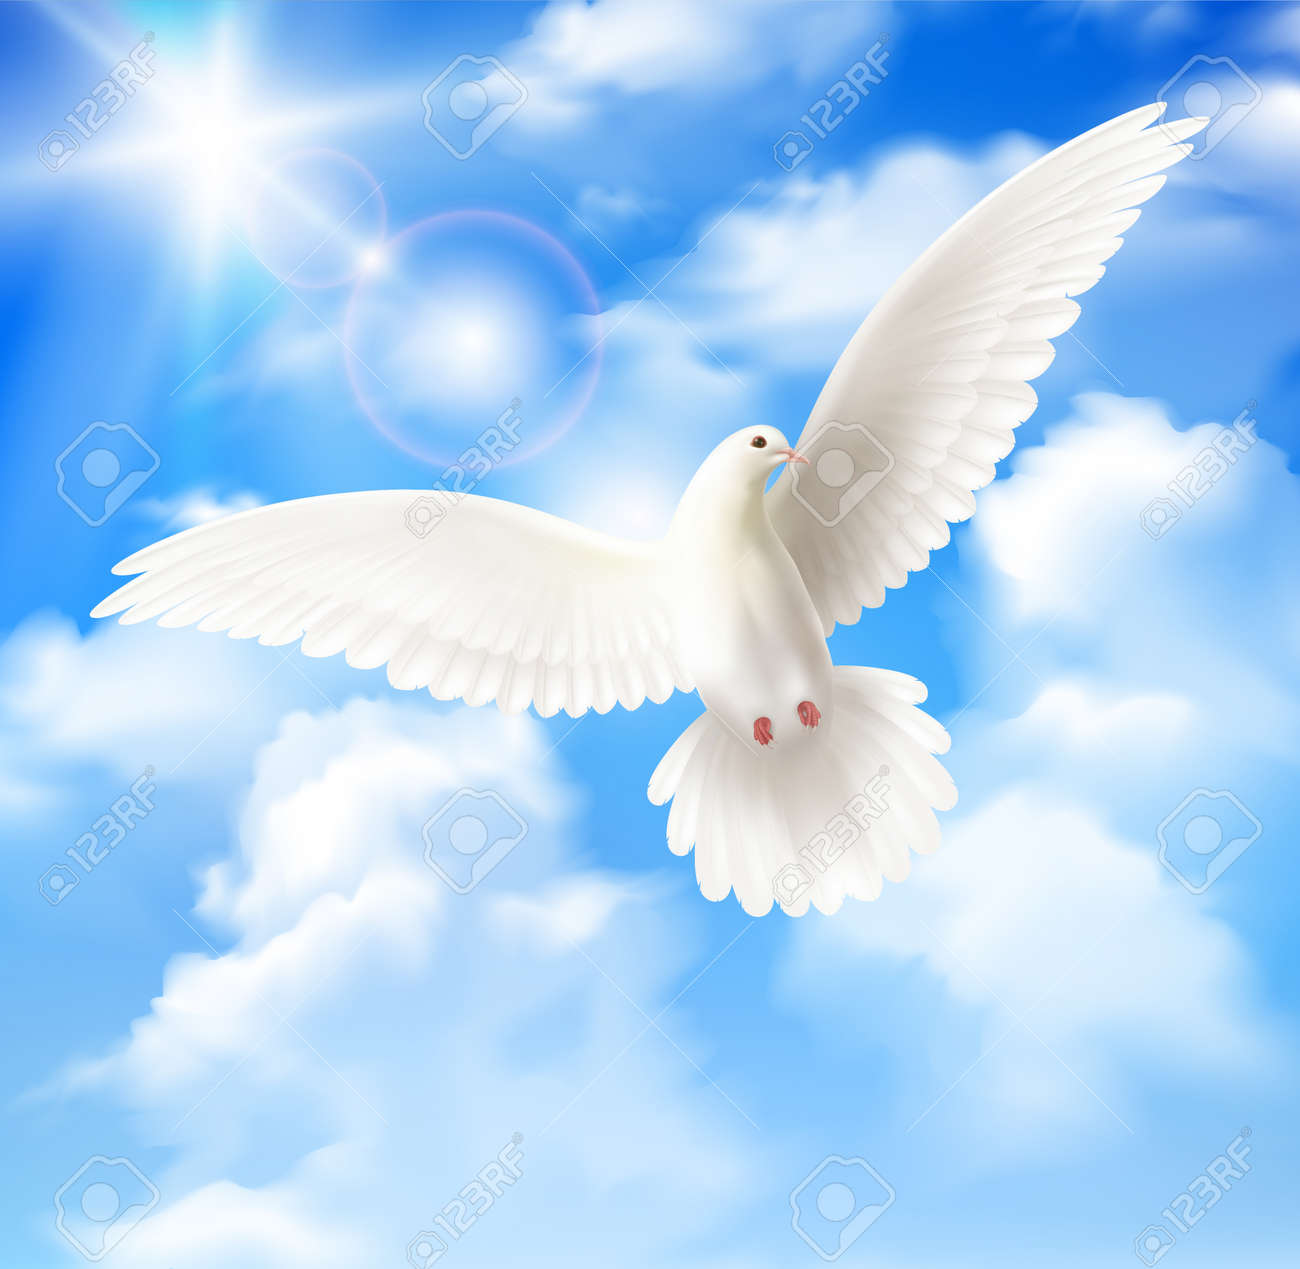 White pigeon background with sky sun and clouds realistic vector illustration - 166420134